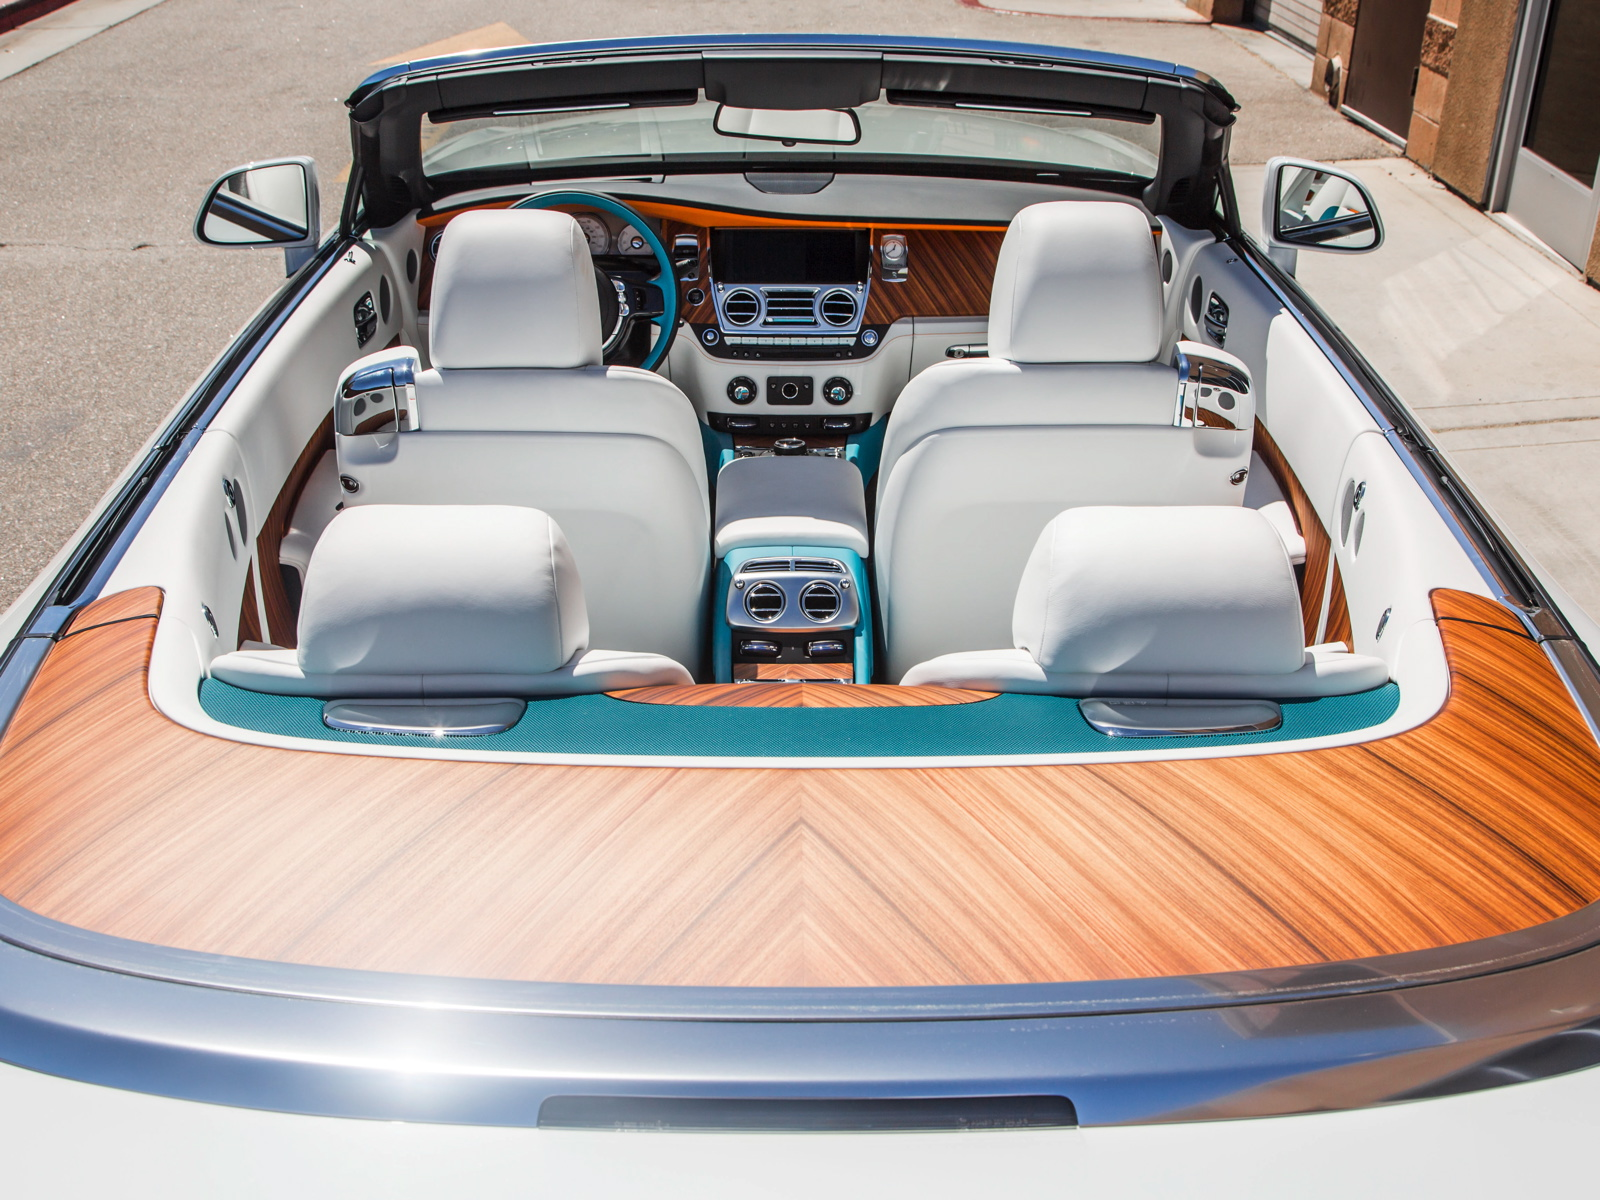 The new Rolls-Royce Palm Springs Collection has been unveiled